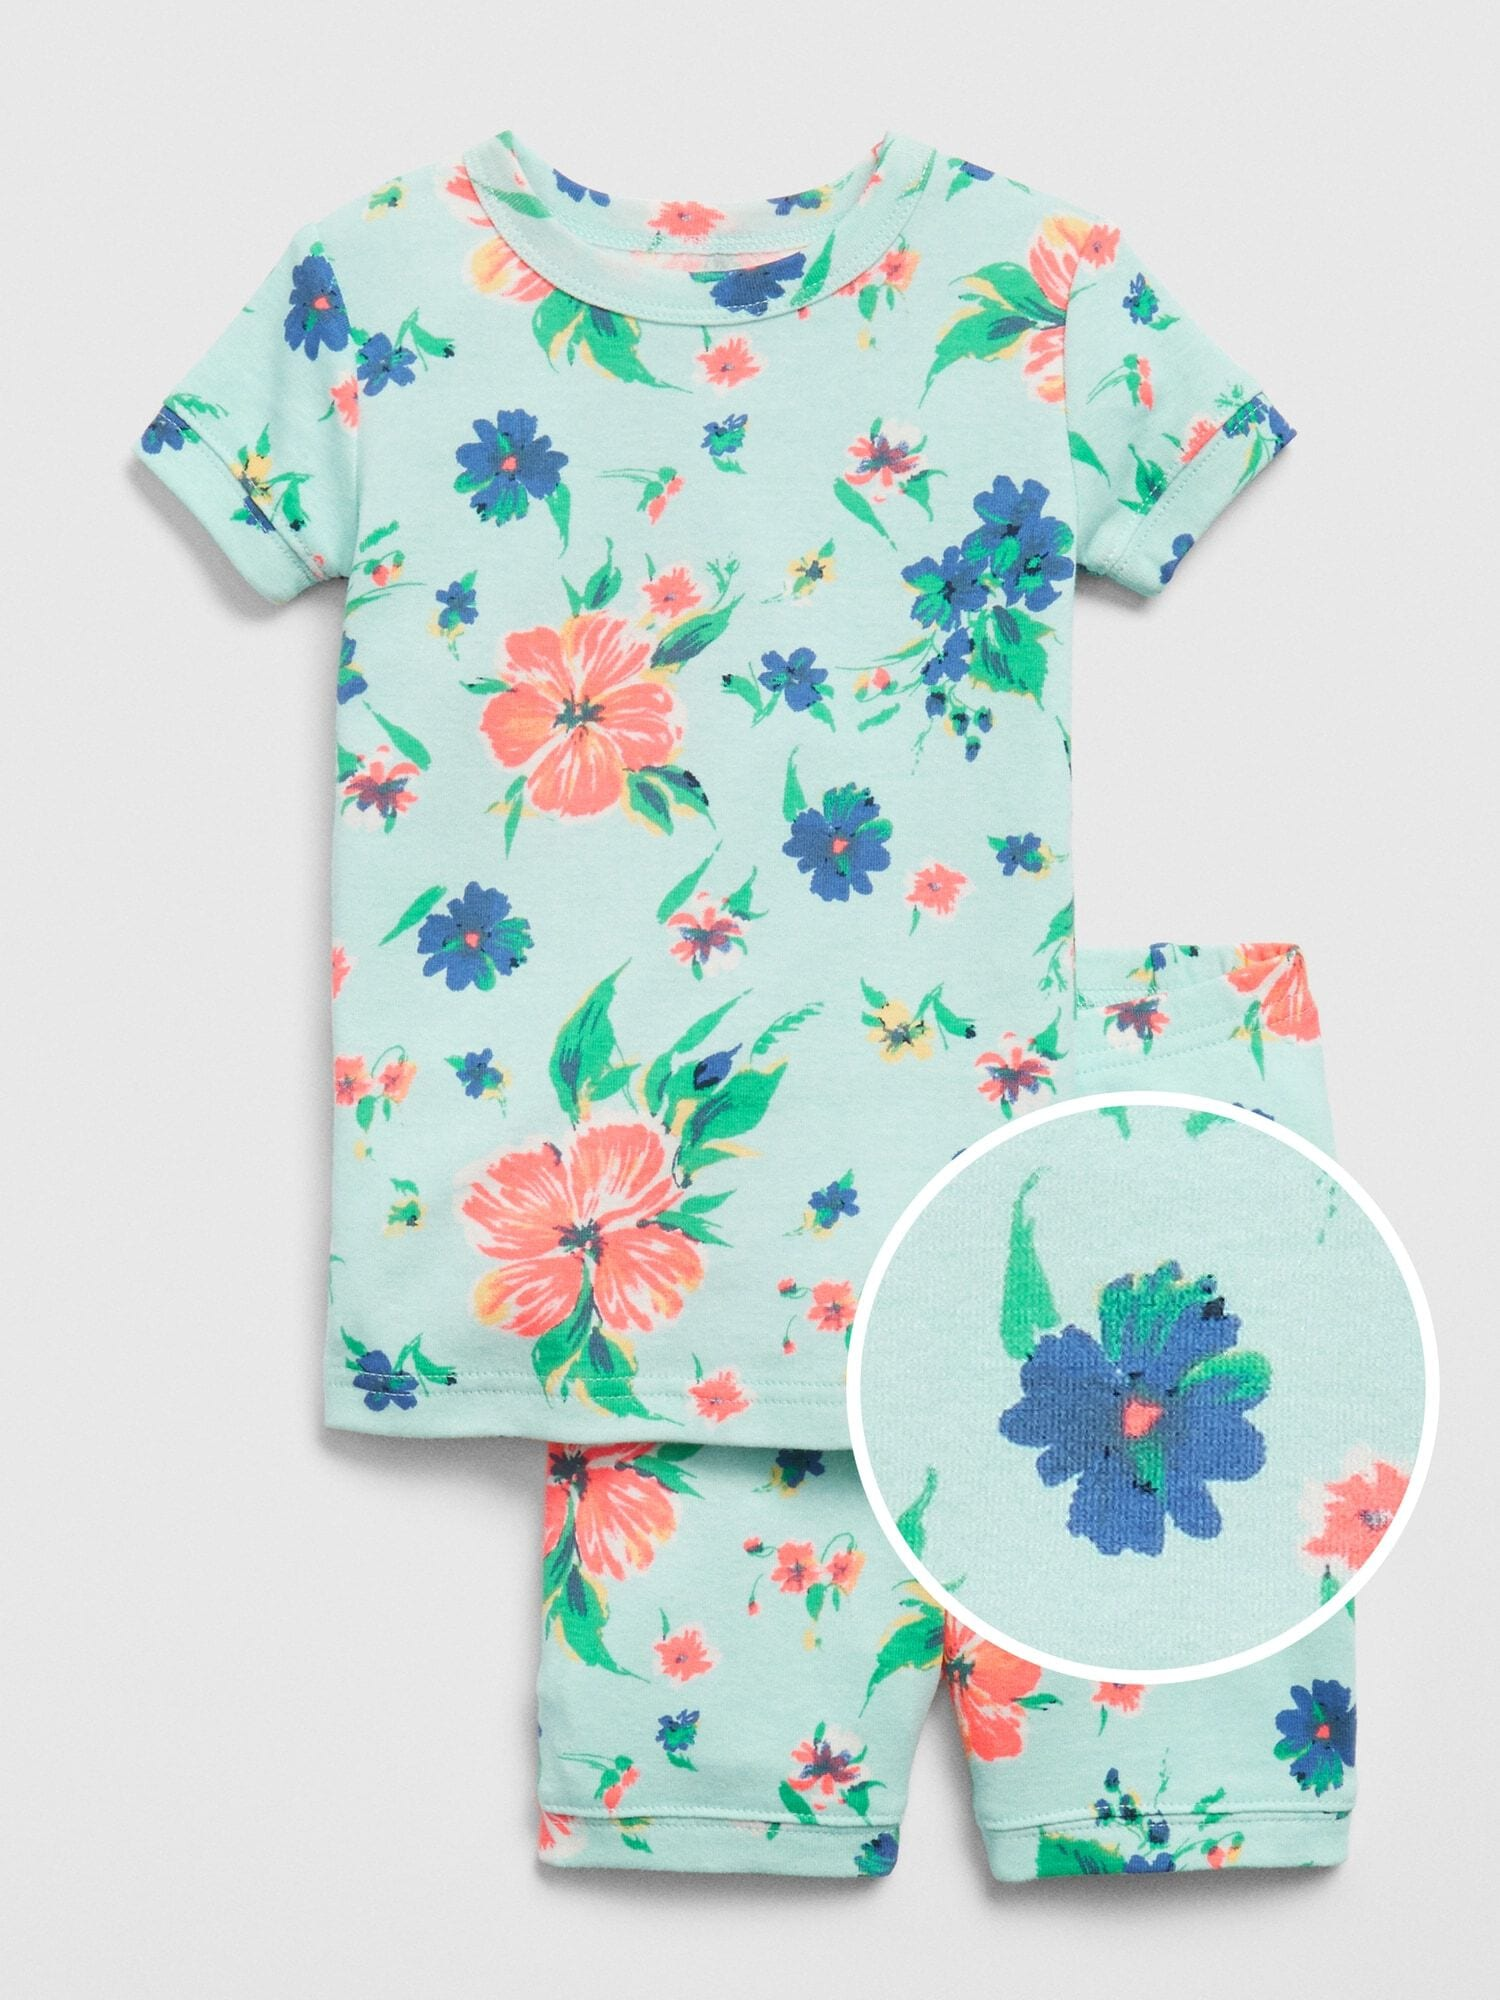 Helpful Strawberry Faire 12-18 Months Summer Dress Flower Floral More Discounts Surprises Girls' Clothing (0-24 Months) Baby